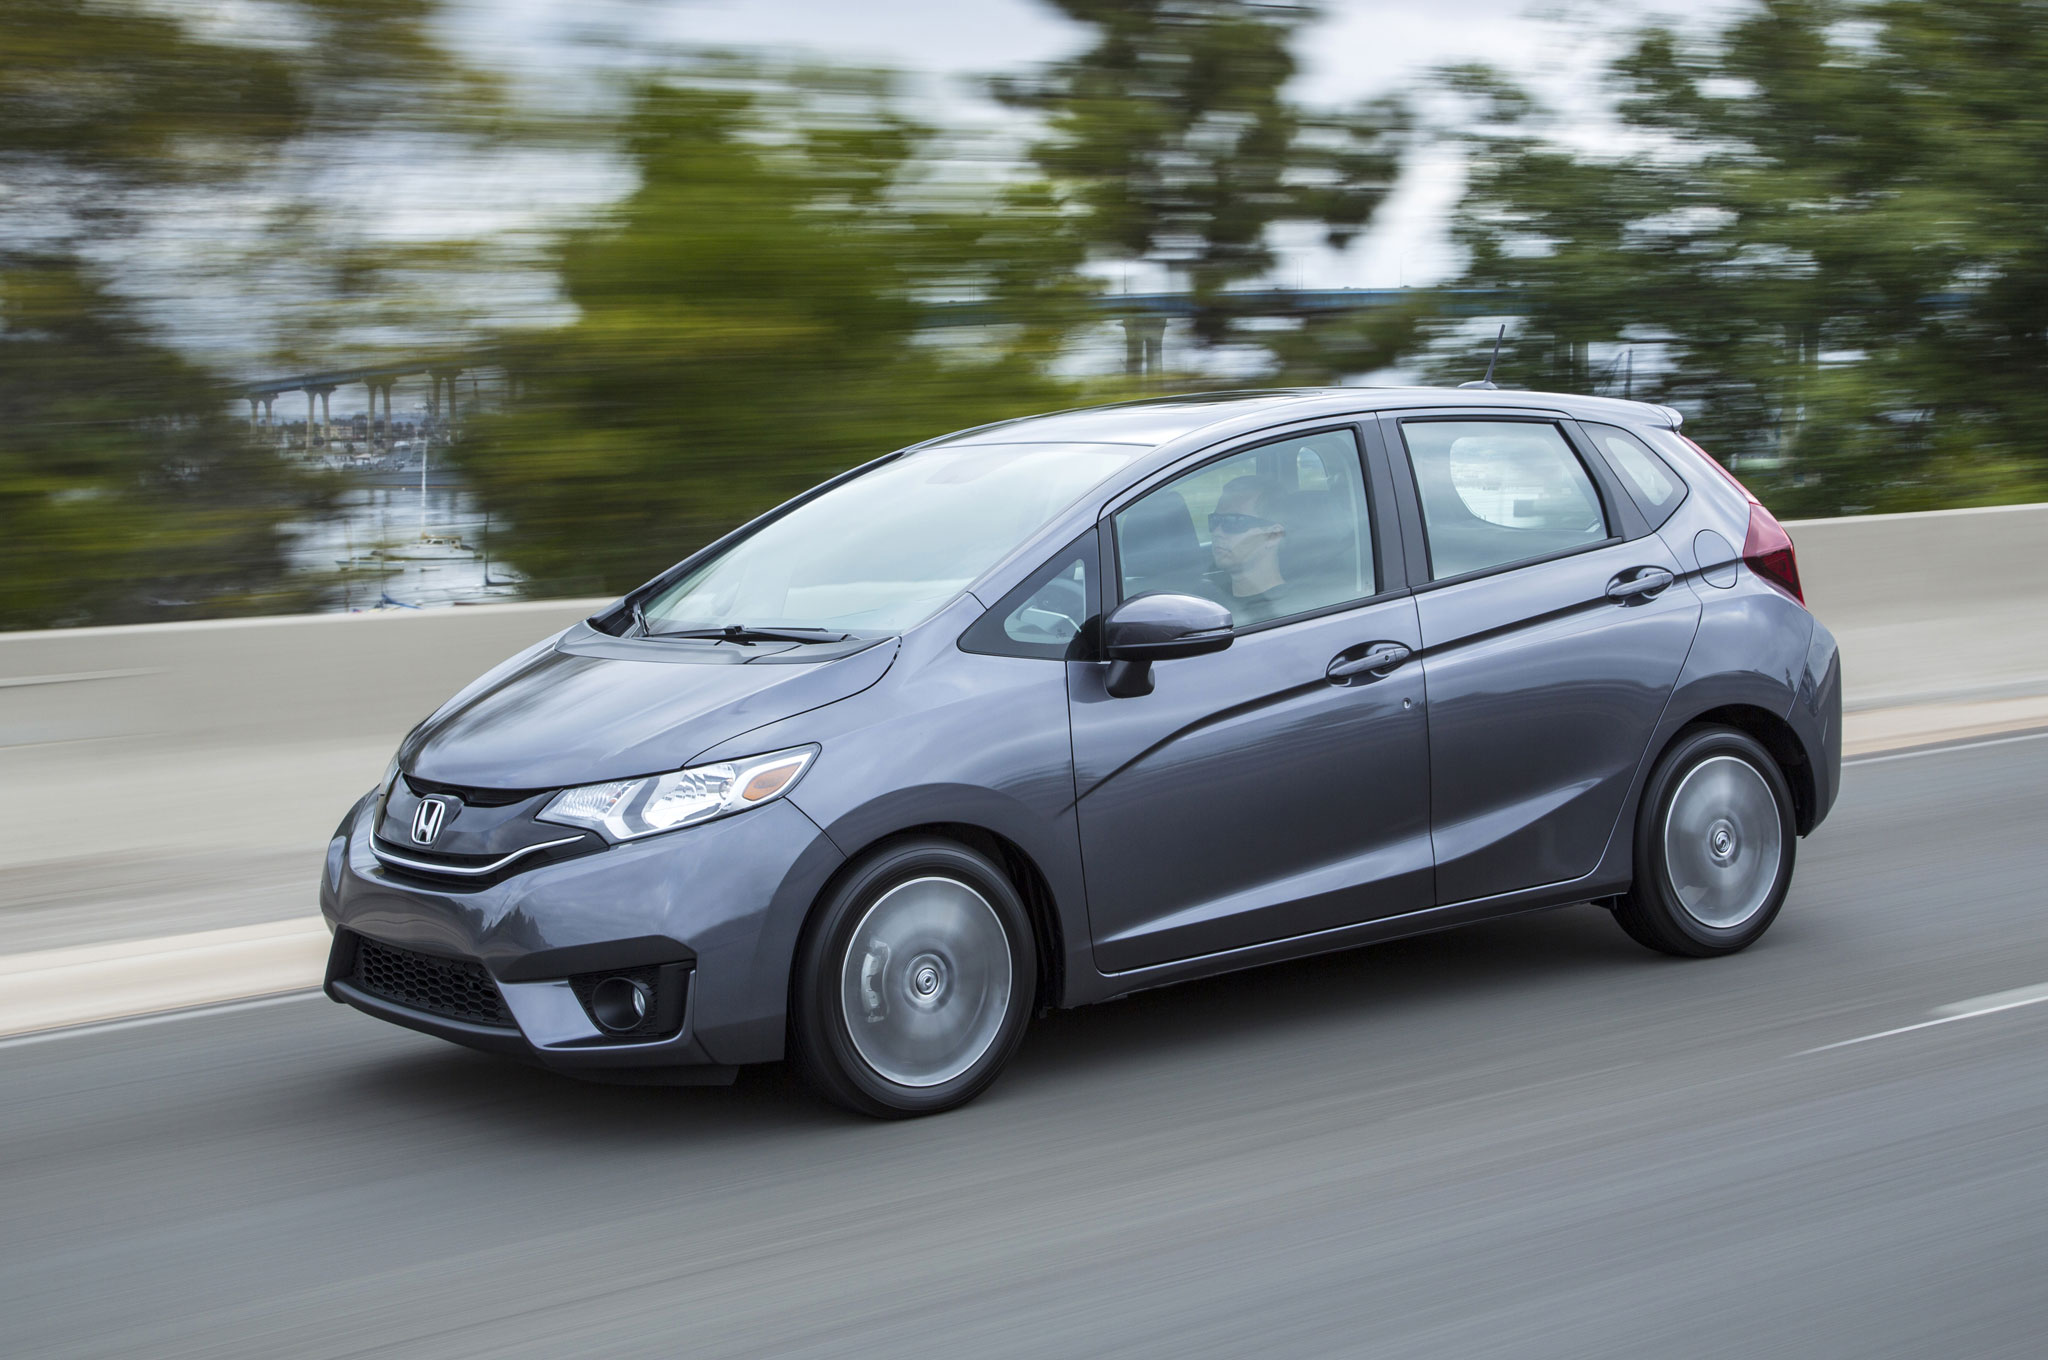 2009 honda fit to arrive stateside in greater numbers for 2016 honda fit msrp